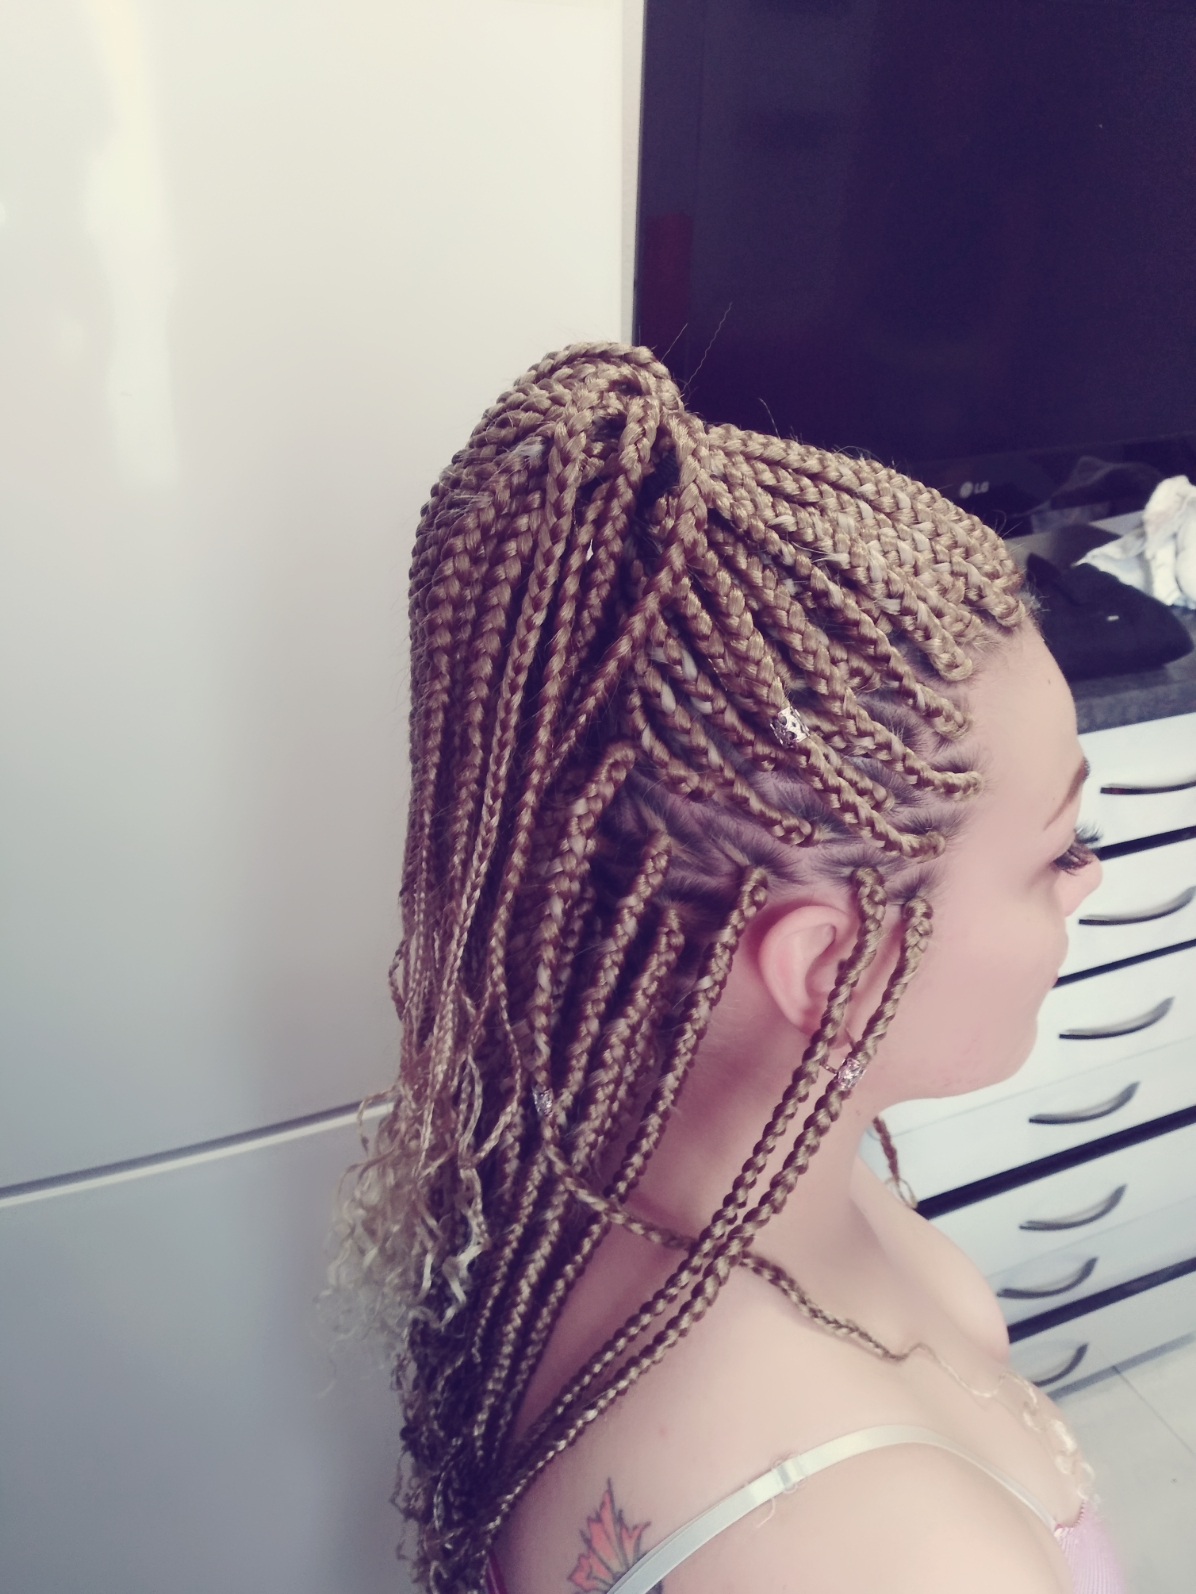 salon de coiffure afro tresse tresses box braids crochet braids vanilles tissages paris 75 77 78 91 92 93 94 95 FGEKGZRO